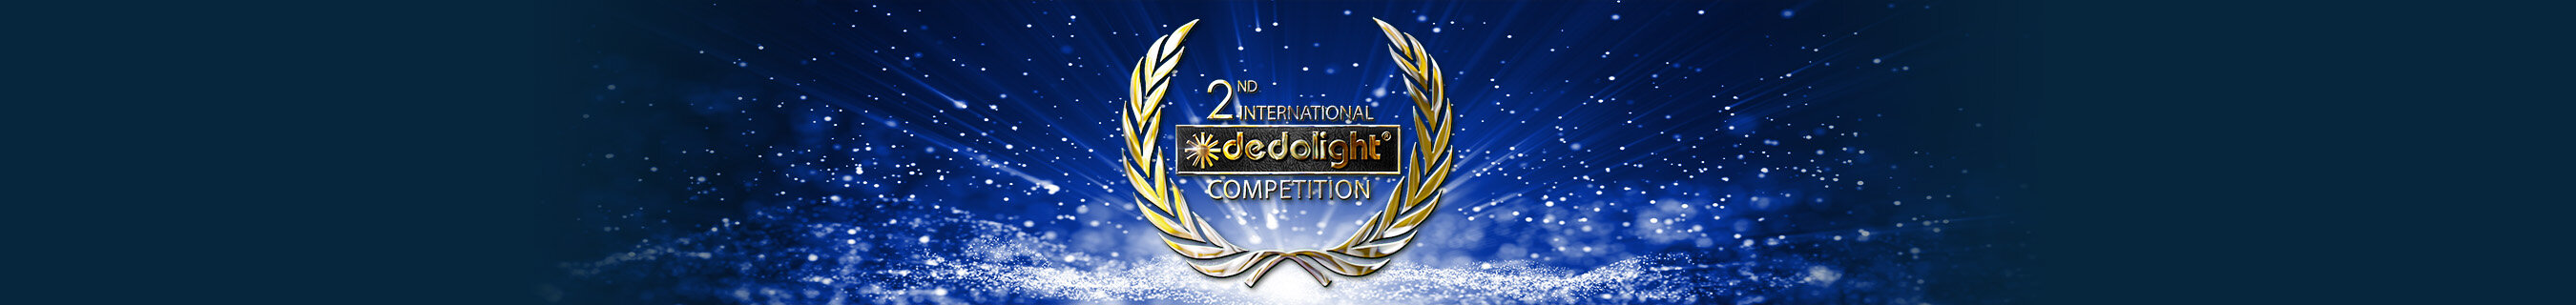 dedolight Competition 2019